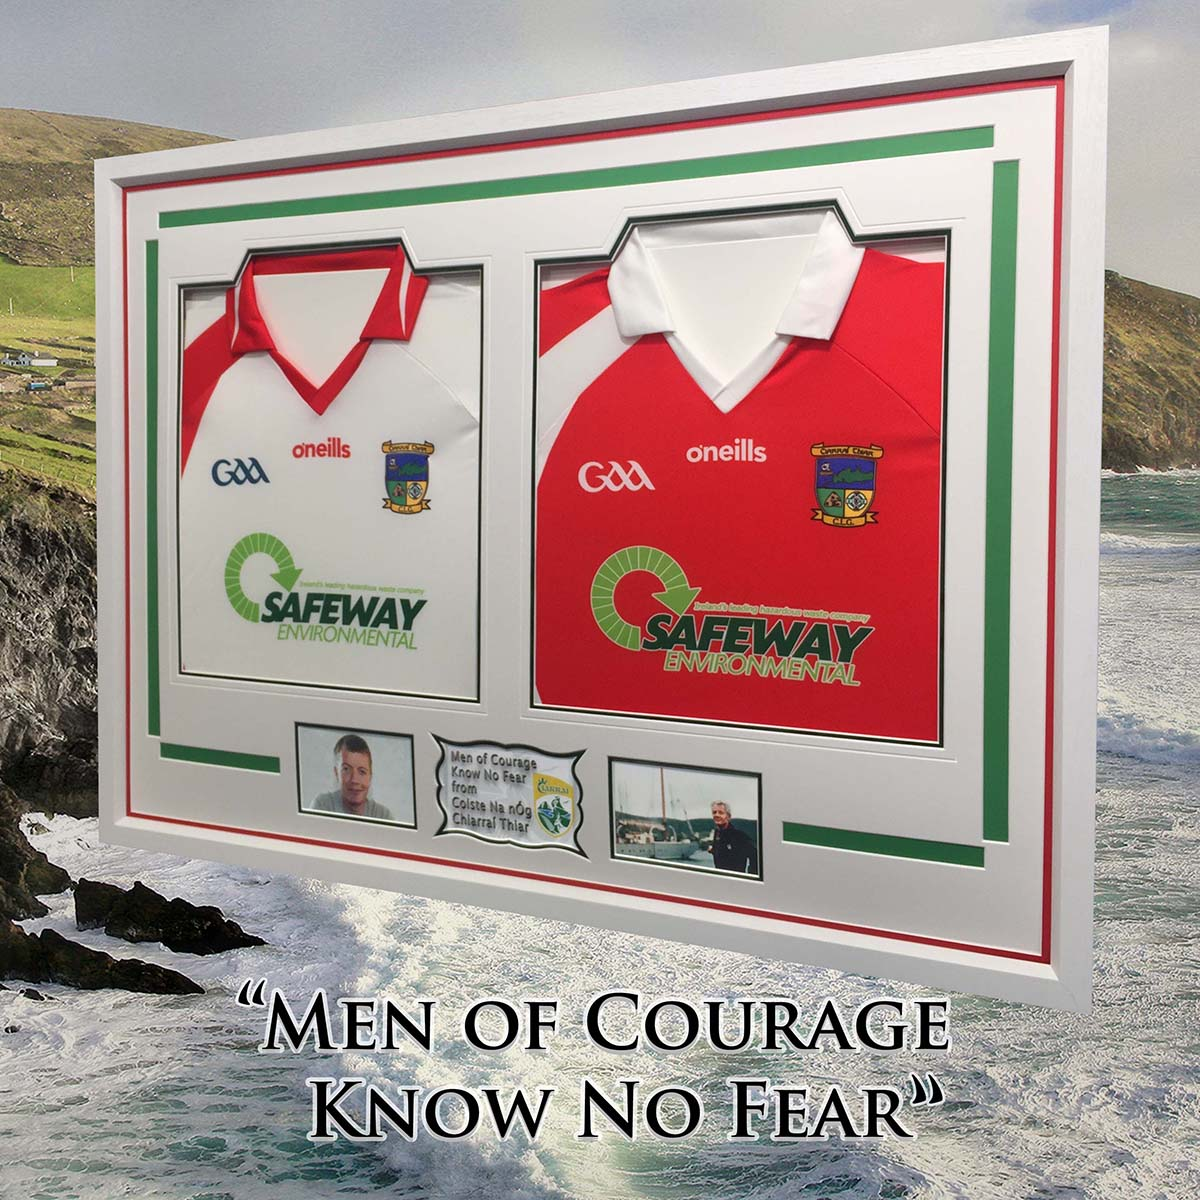 Framed Jerseys for Men of Courage & the Wild Atlantic - with inscription